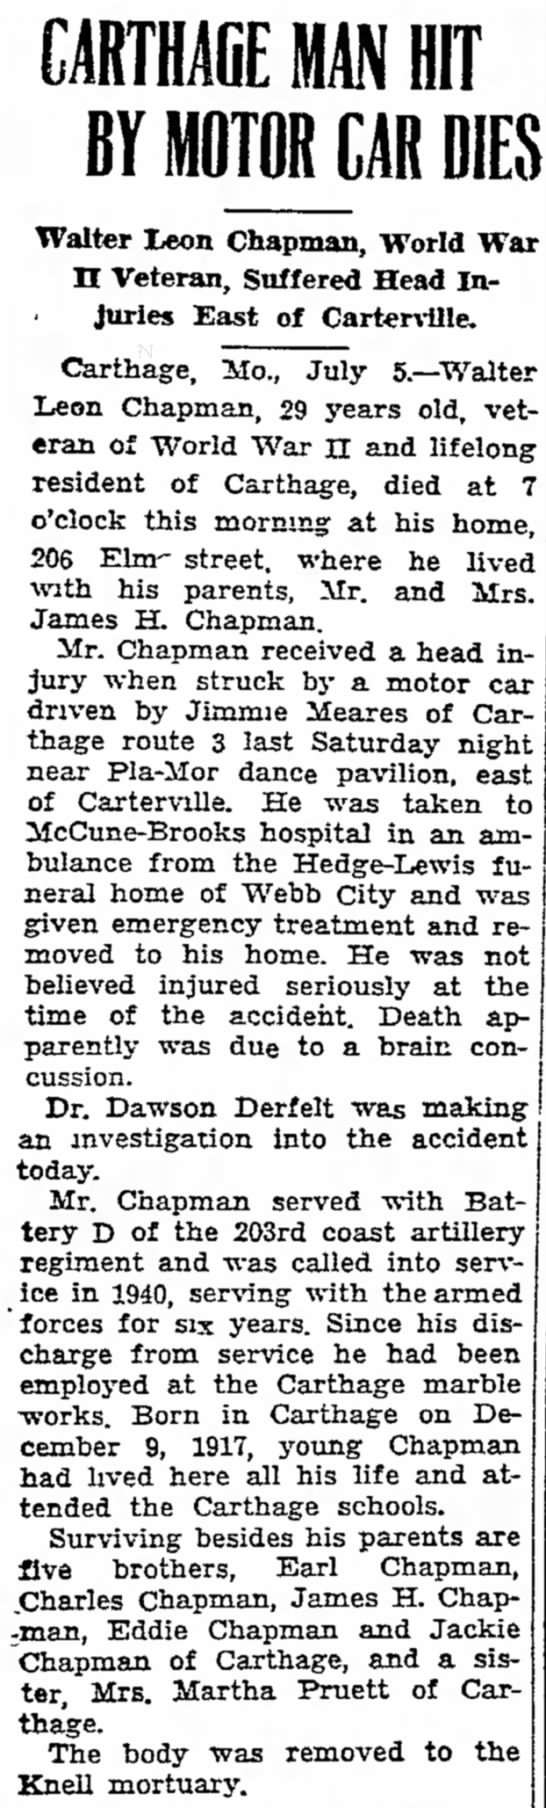 Meares, Jimmie auto accident caused death of another Joplin Globe 6Jul1947 - MAN HIT BY MOTORCAR DIES Walter Leon Chapman,...